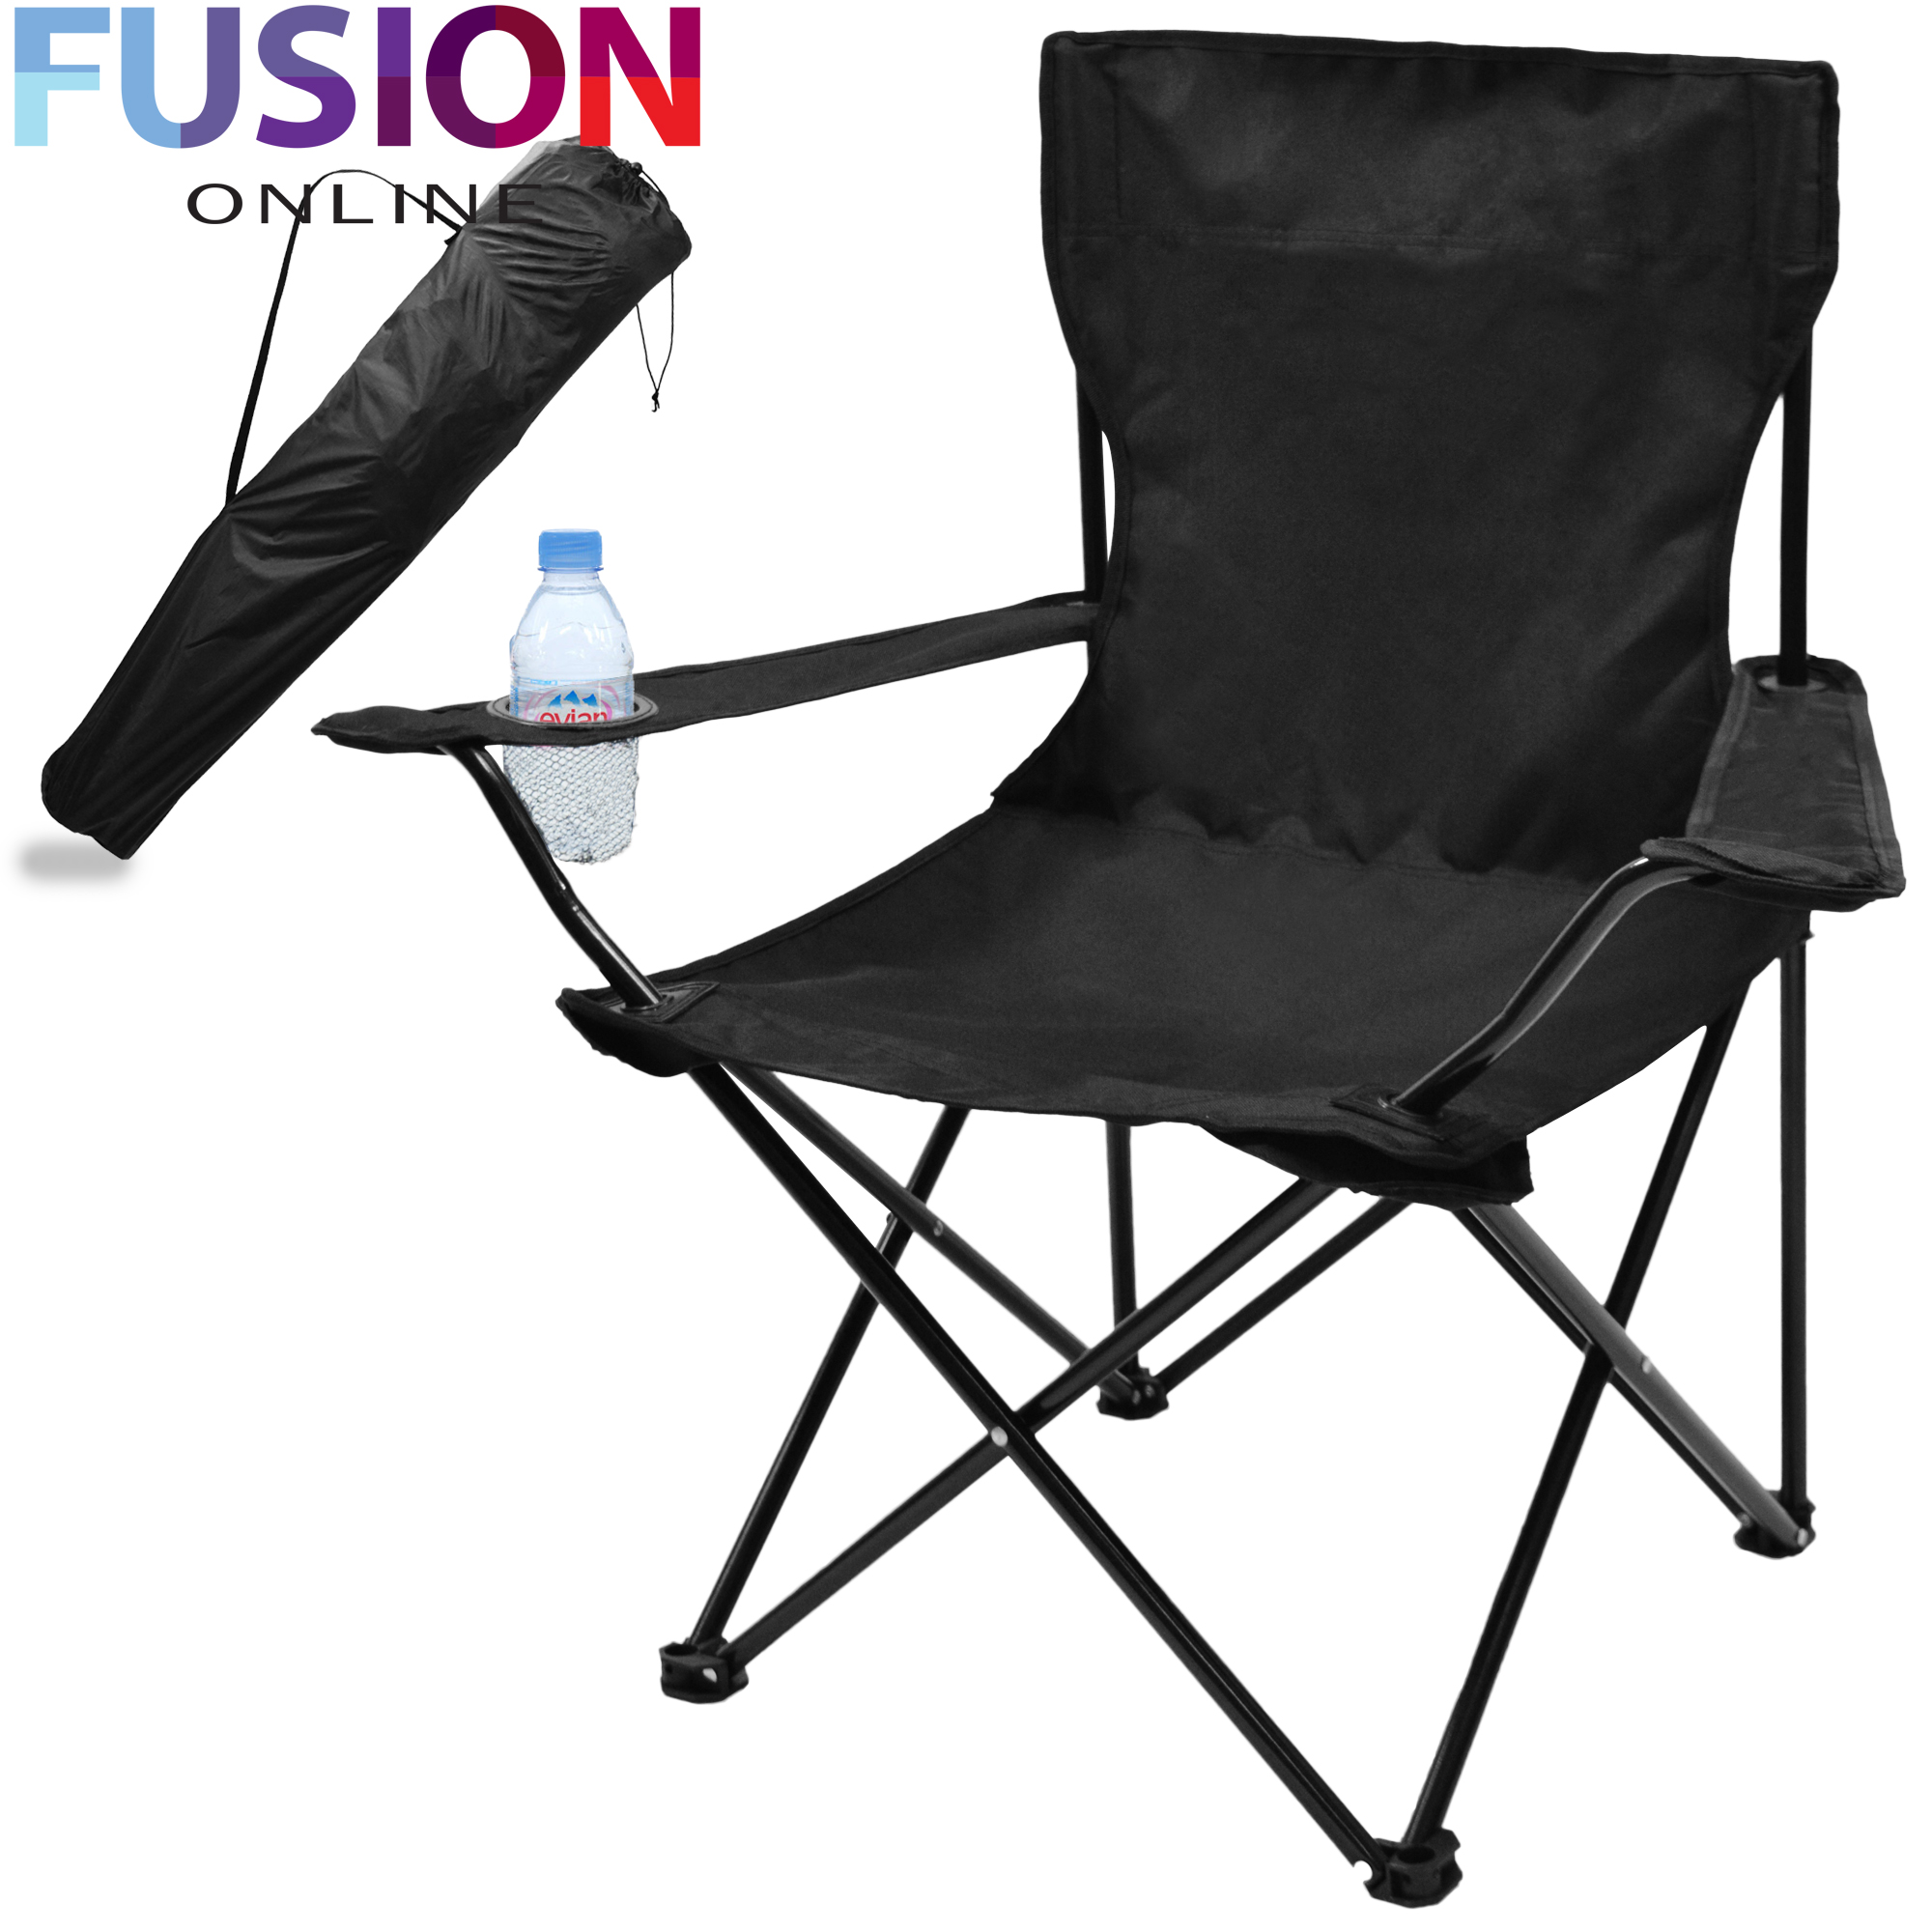 LARGE FOLDABLE STEEL BBQ STAND BARBECUE FLAT PORTABLE CAMPING OUTDOOR GARDEN